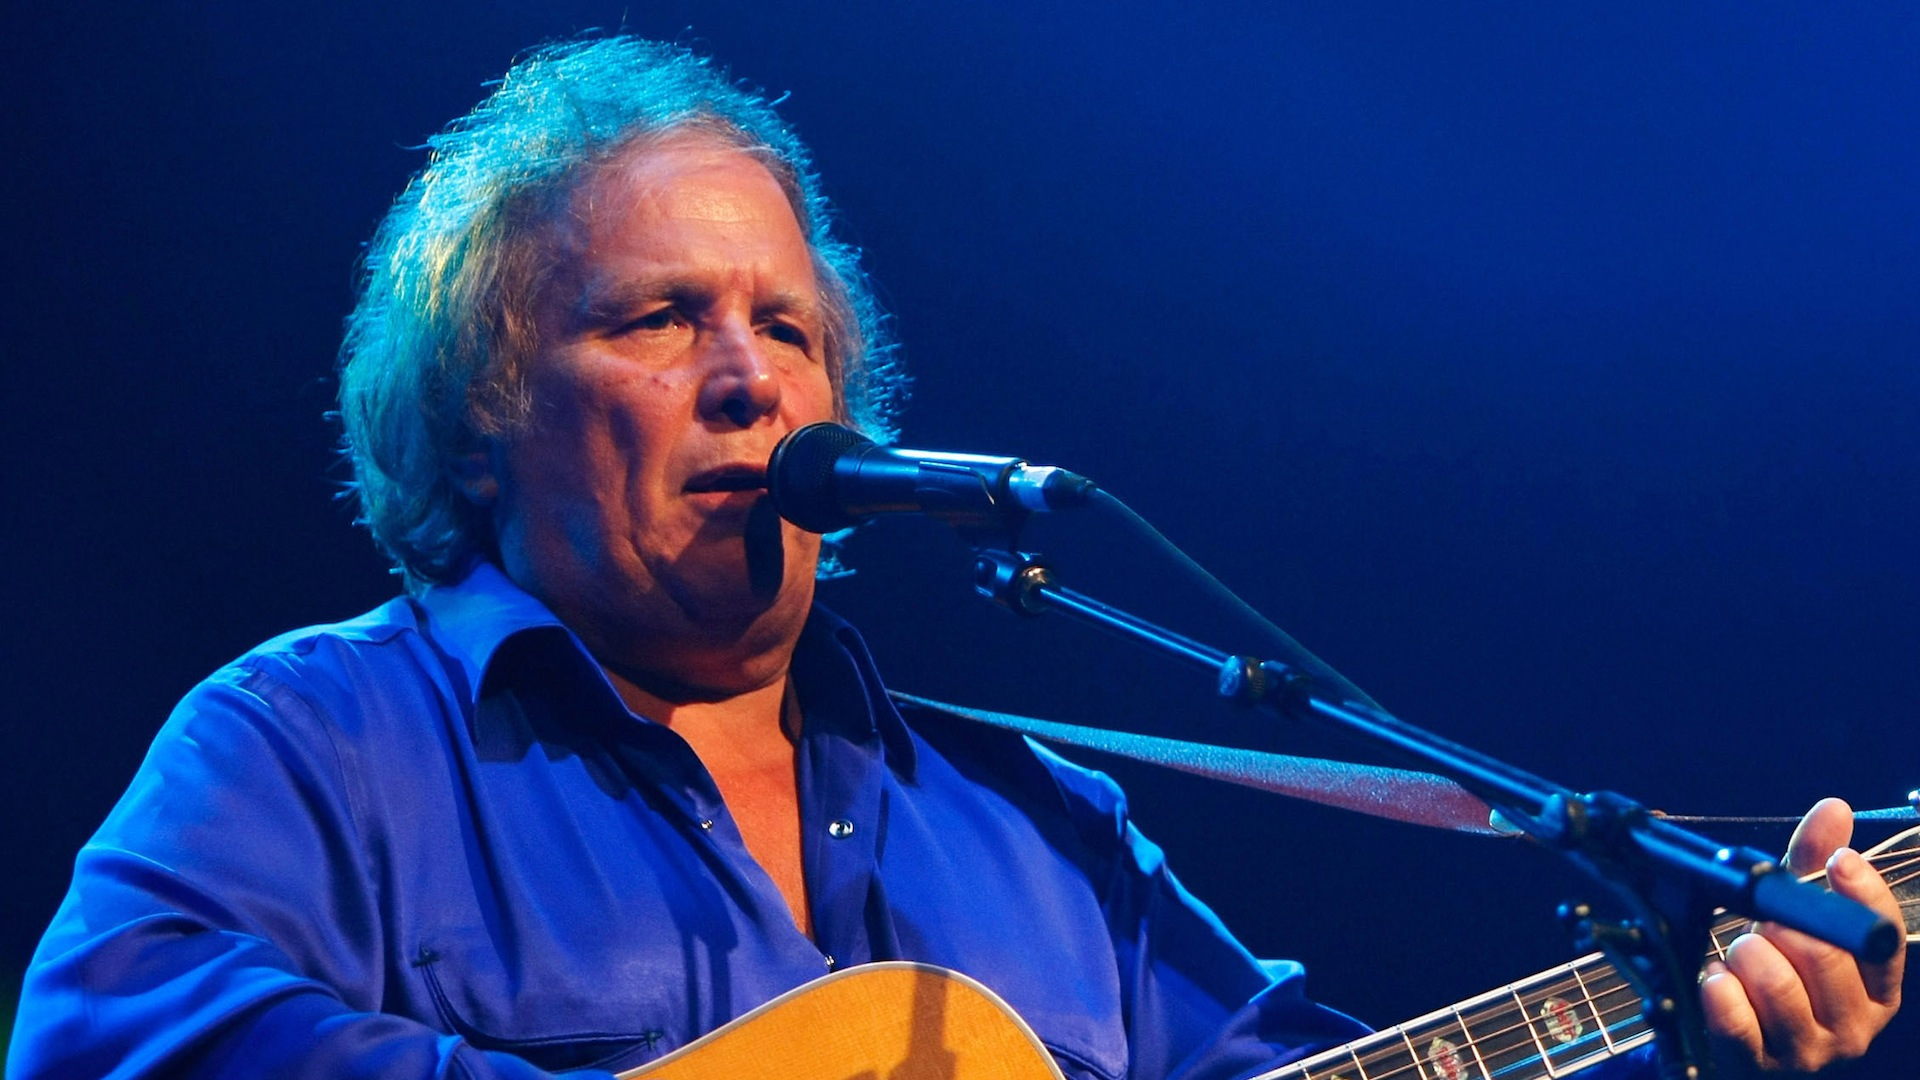 Don McLean - 2017 Light Brown hair & edgy hair style. Current length:  short hair (chin length)